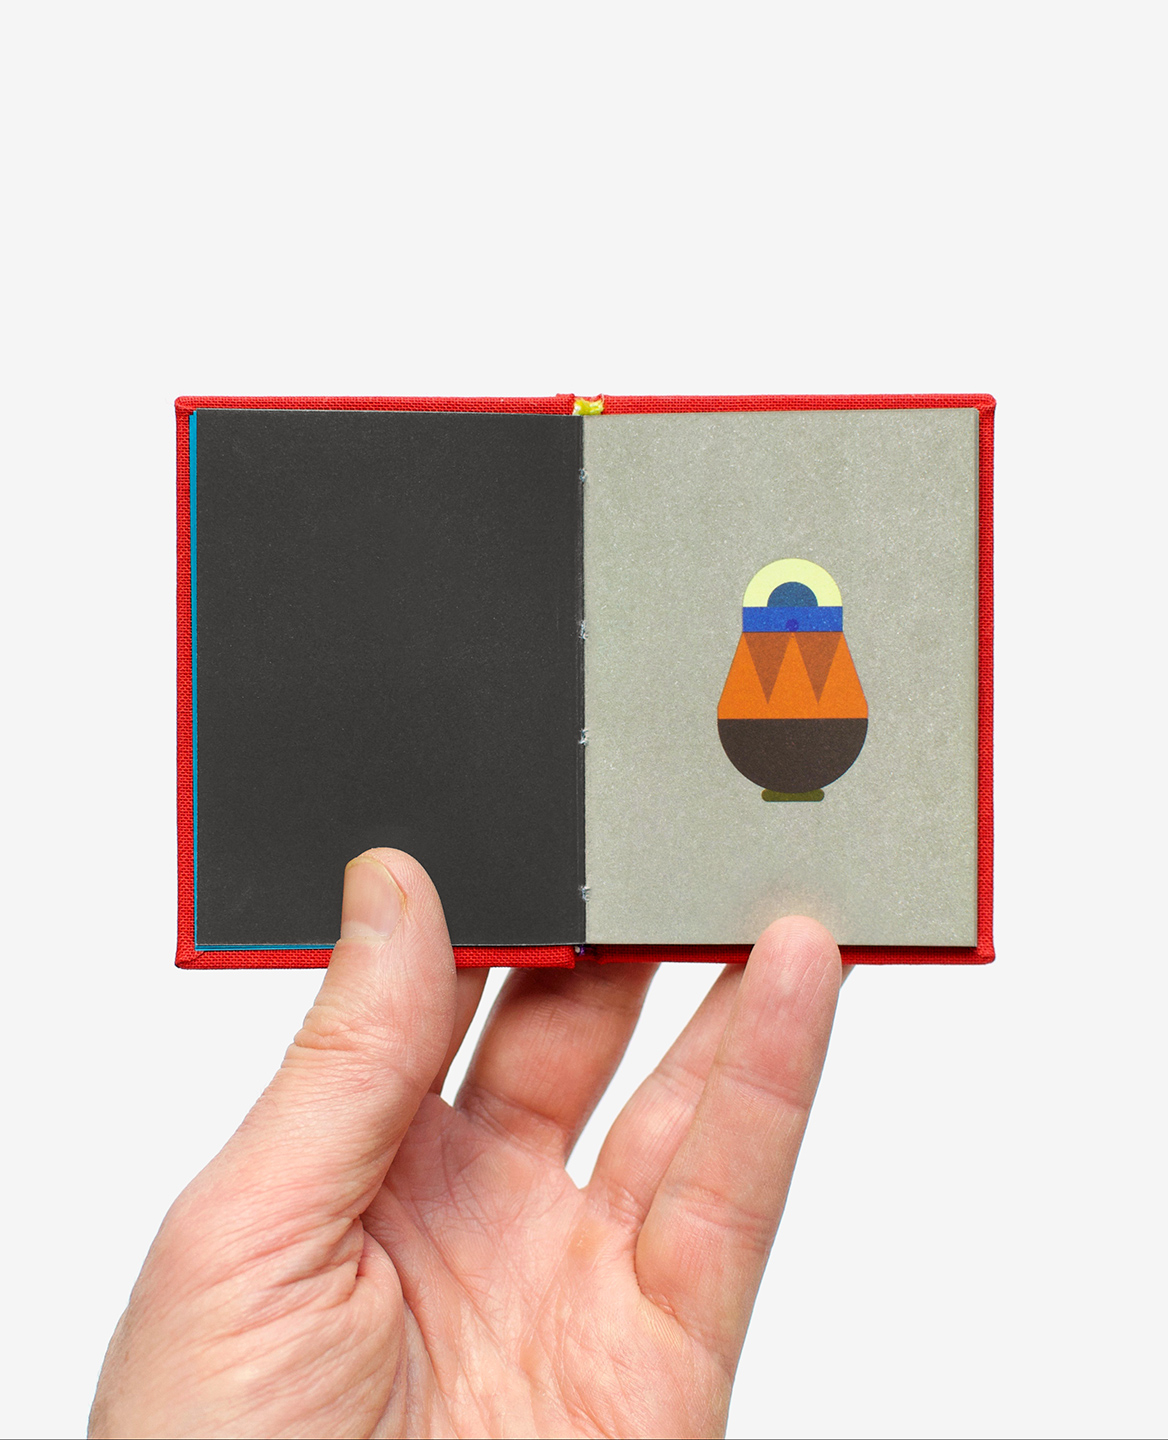 Hand holding the miniature book Matryoshka by Fanette Mellier published by Éditions du livre